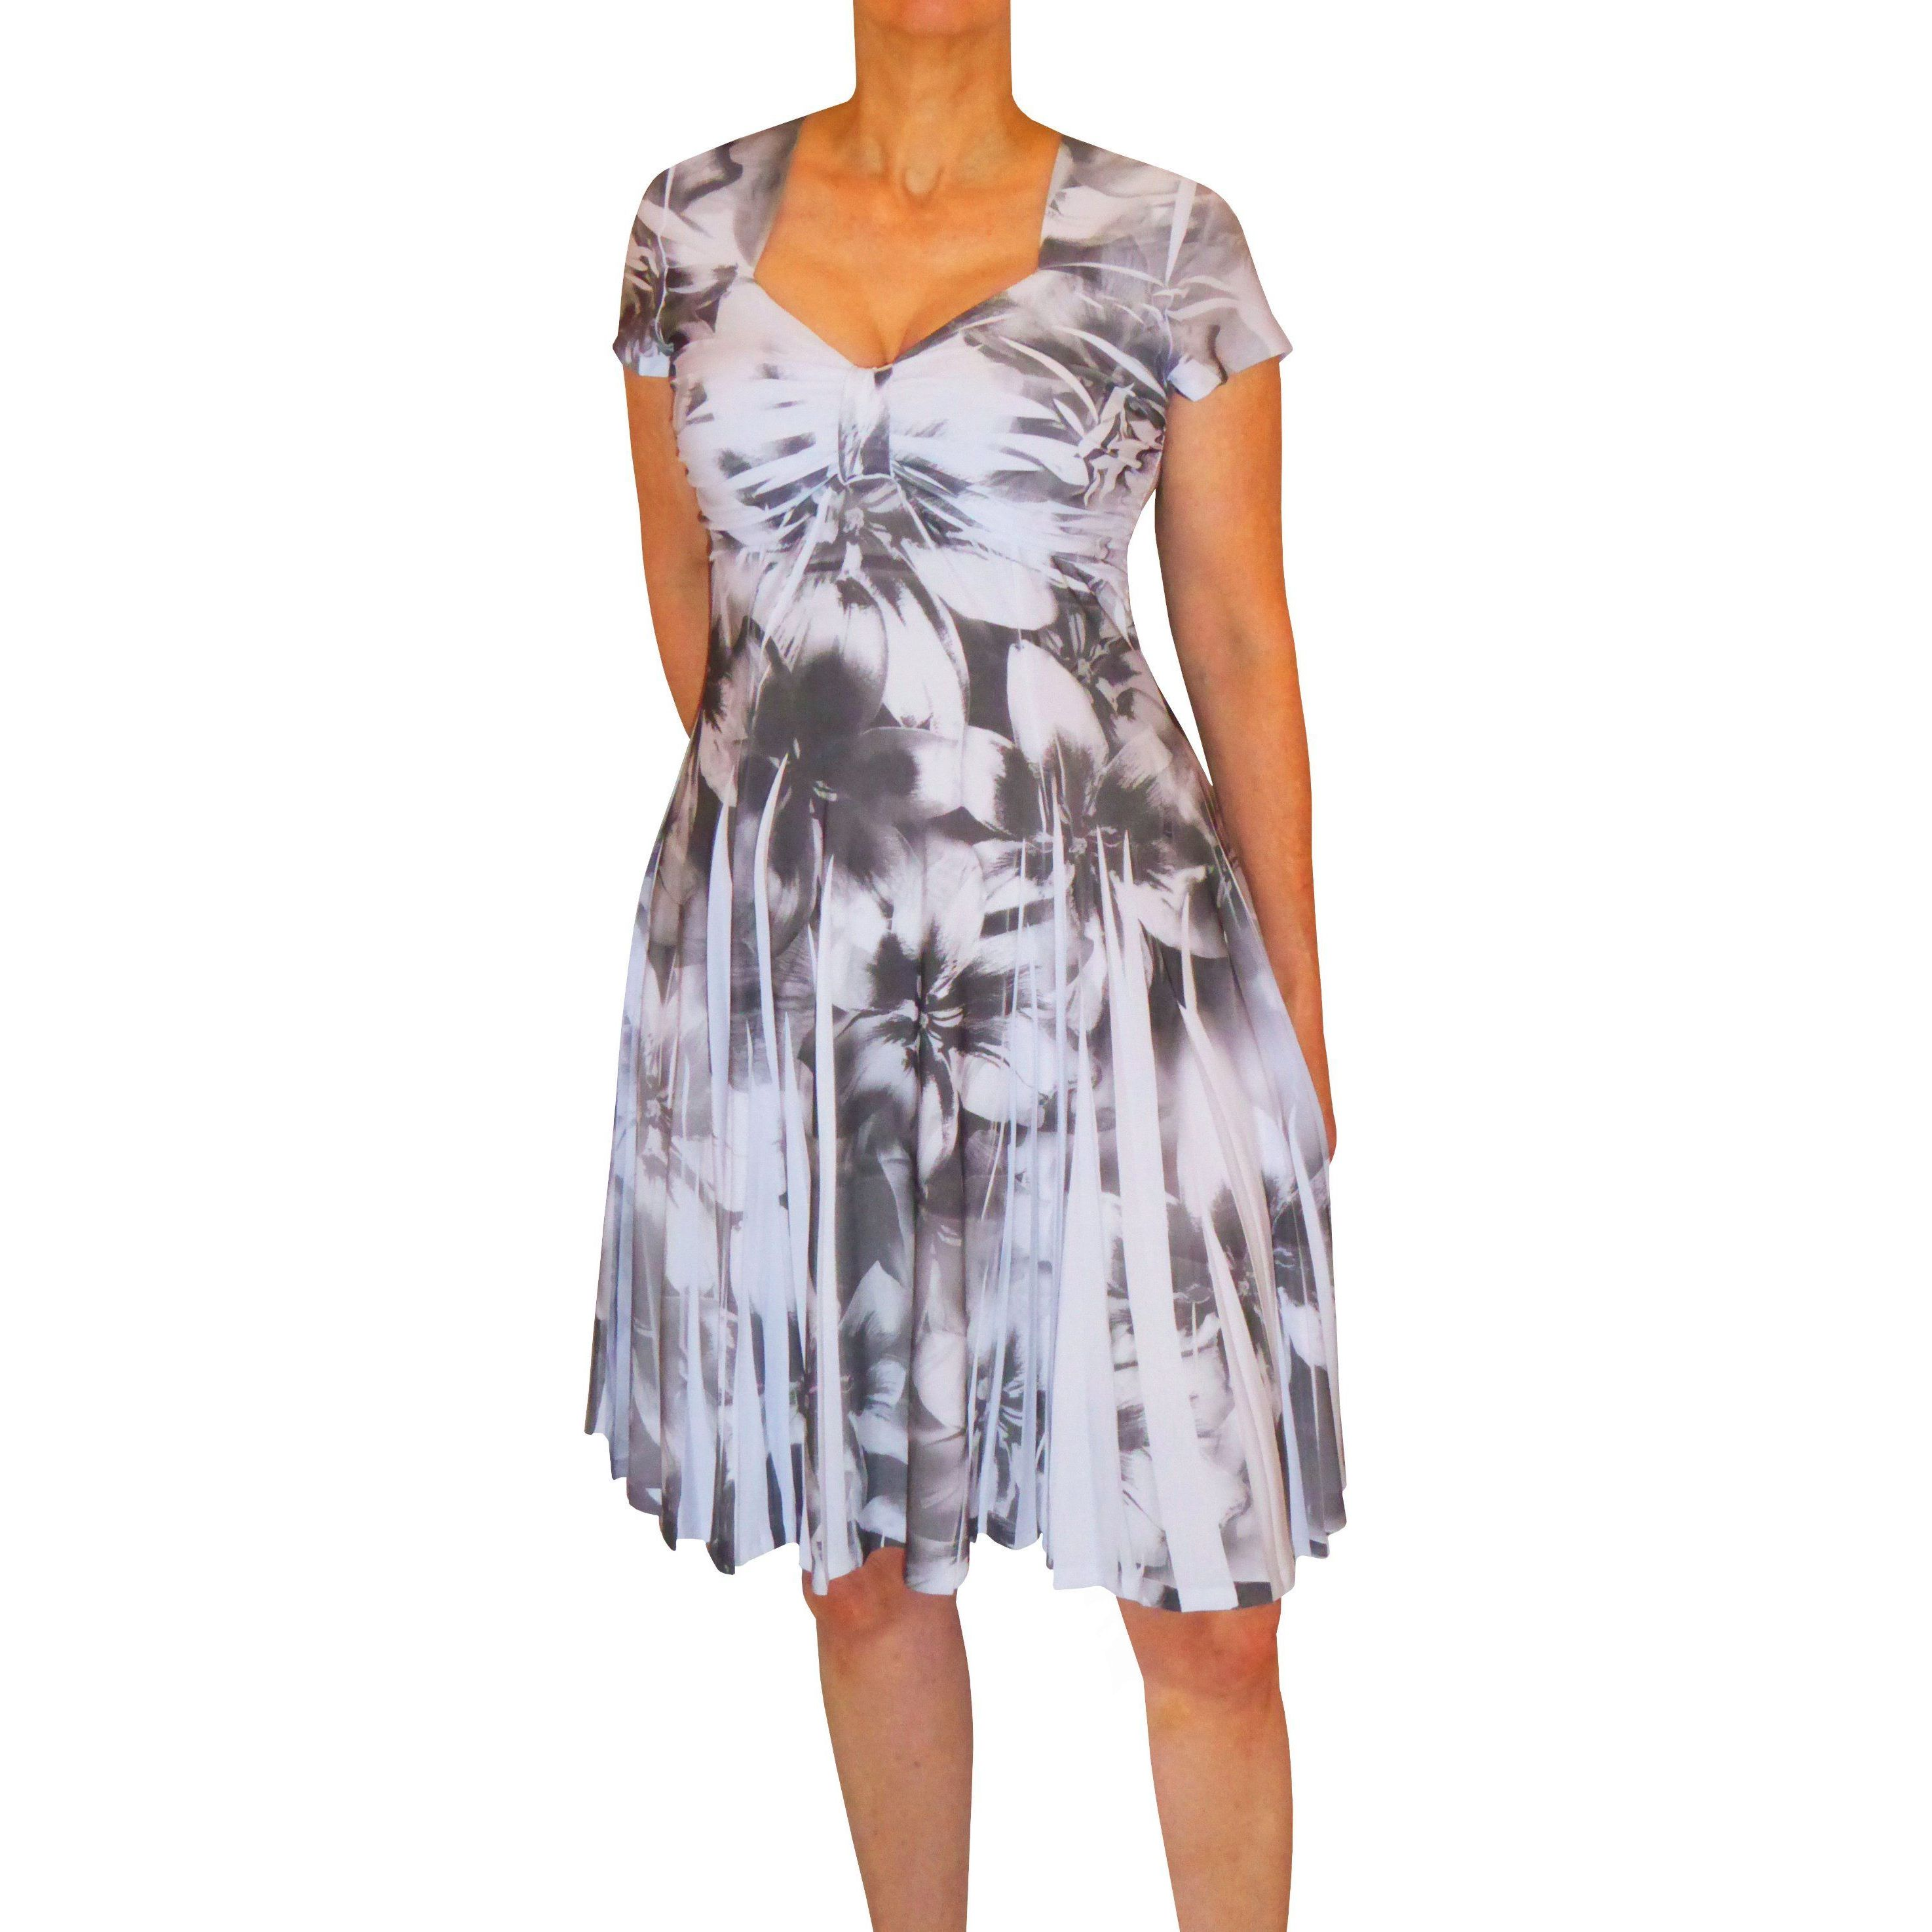 d4d26099cc2 Shop Funfash Women s Heather Grey White Plus-size Slimming Cocktail Dress -  Free Shipping Today - Overstock - 13723853